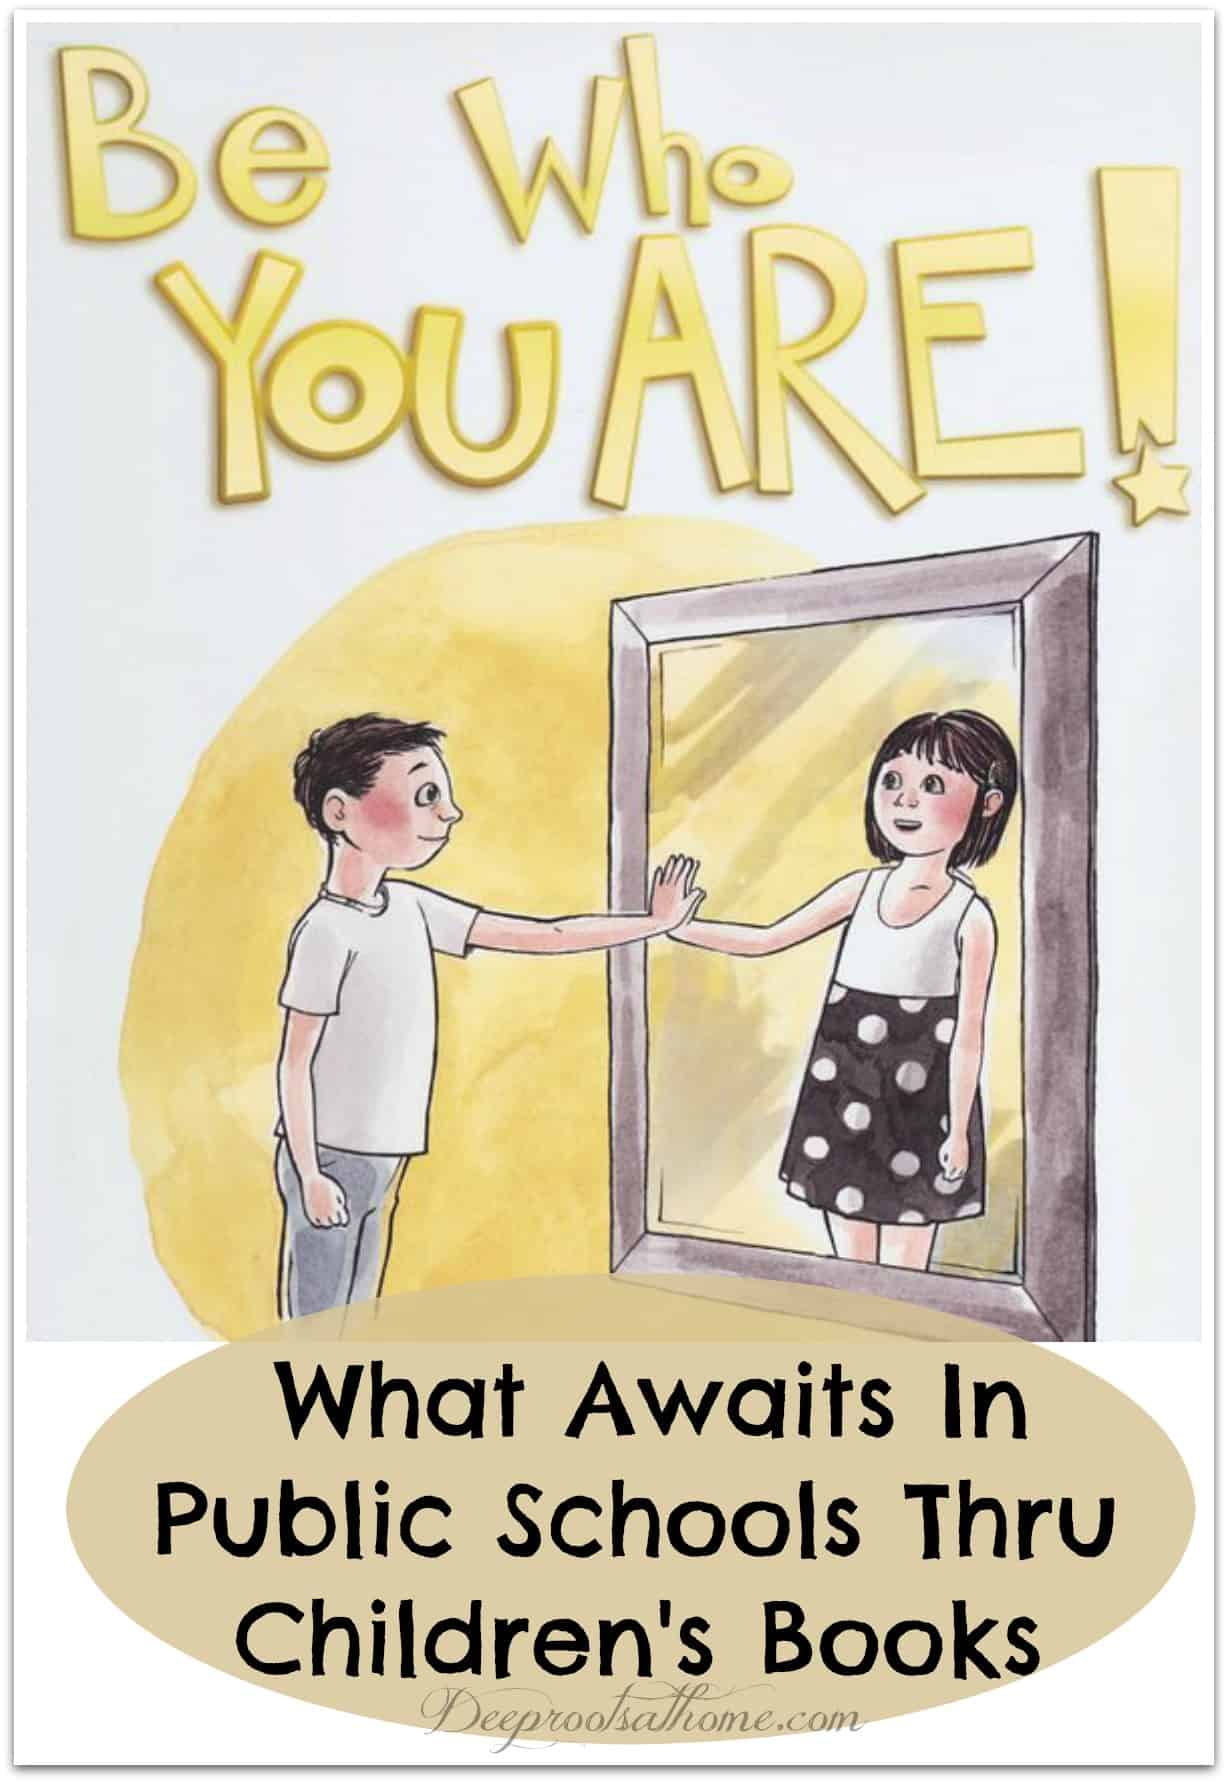 What Awaits In Public Schools Thru Children's Books. The book cover of 'Be Who You Are' by Jennifer Carr.